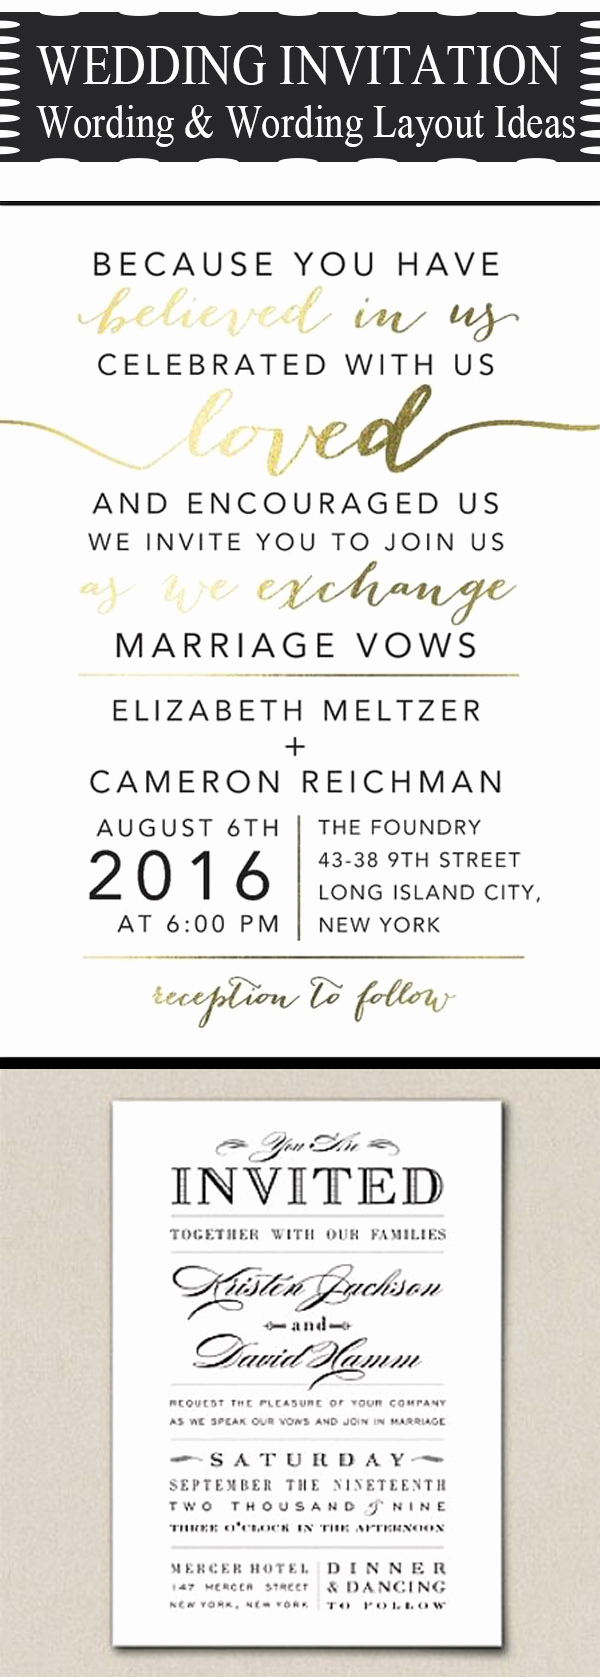 Wedding Reception Invitation Ideas Awesome 20 Popular Wedding Invitation Wording & Diy Templates